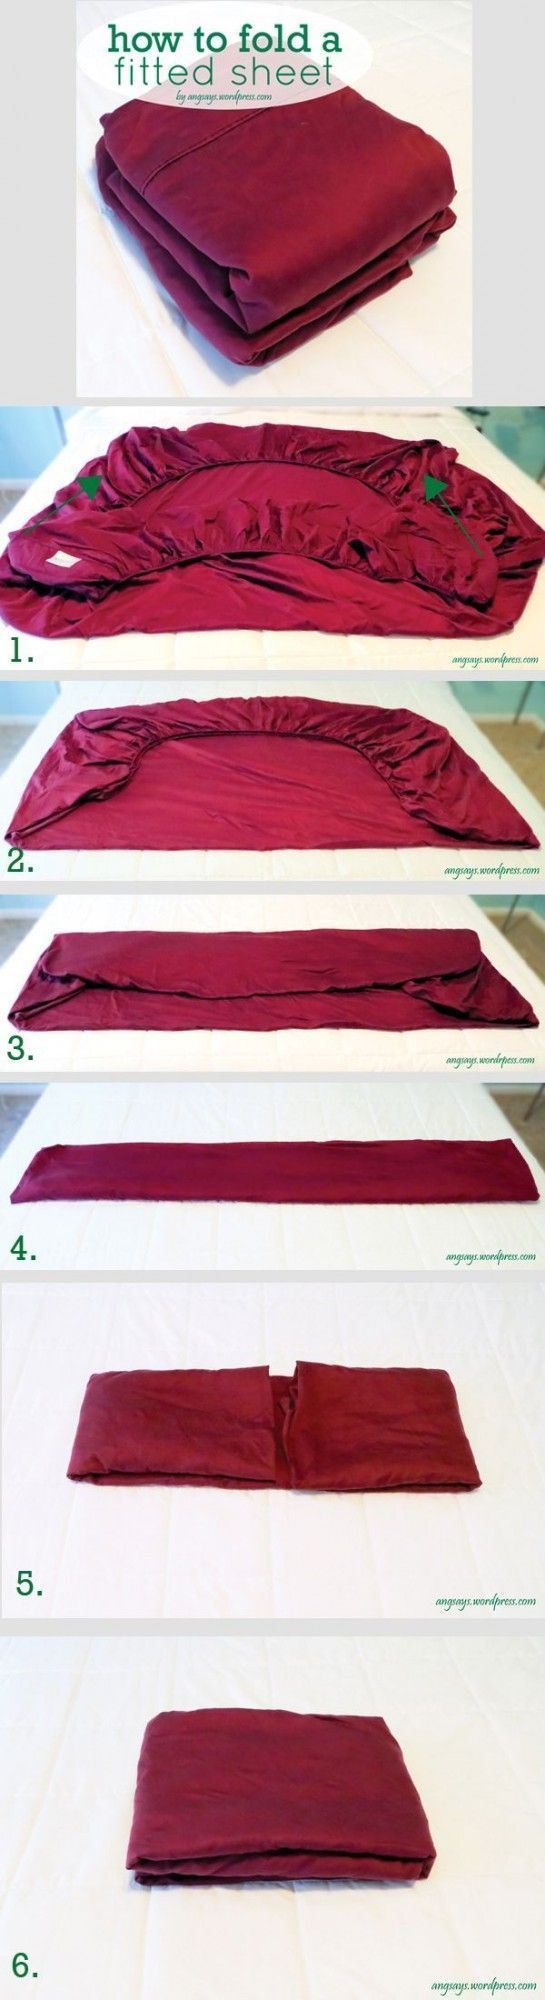 best 25 fitted sheets ideas on pinterest flat sheets how to